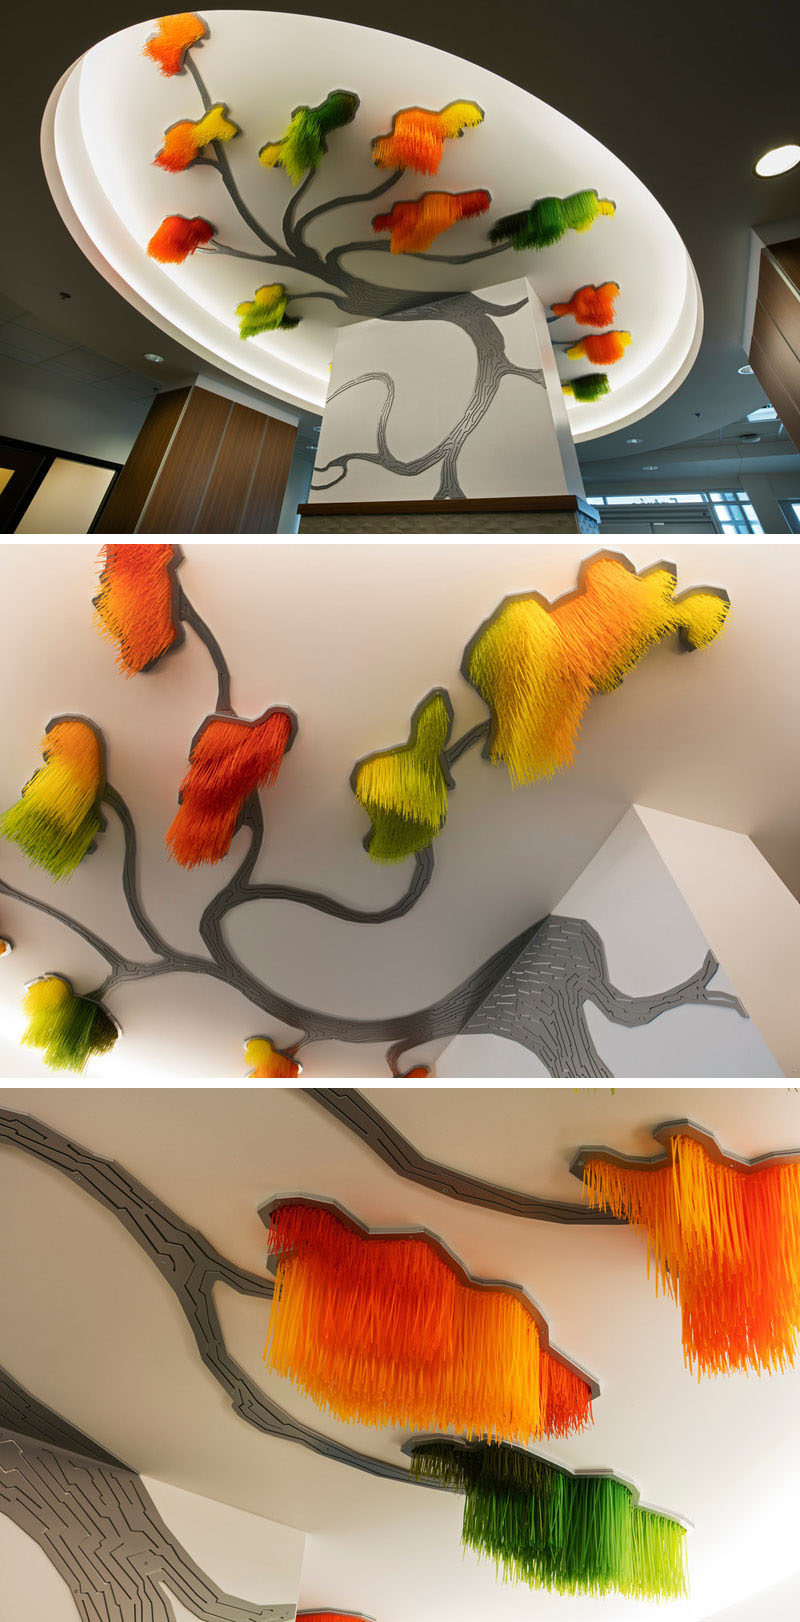 Artist Elisabeth Picard has created this large tree-shaped modern art installation made from from dyed zip ties, painted aluminum, and LED projectors. The piece is called named 'Sous le grand arbre: racine, feuille et fleur', which translates to 'Under the large tree: root, leaf and flower'.